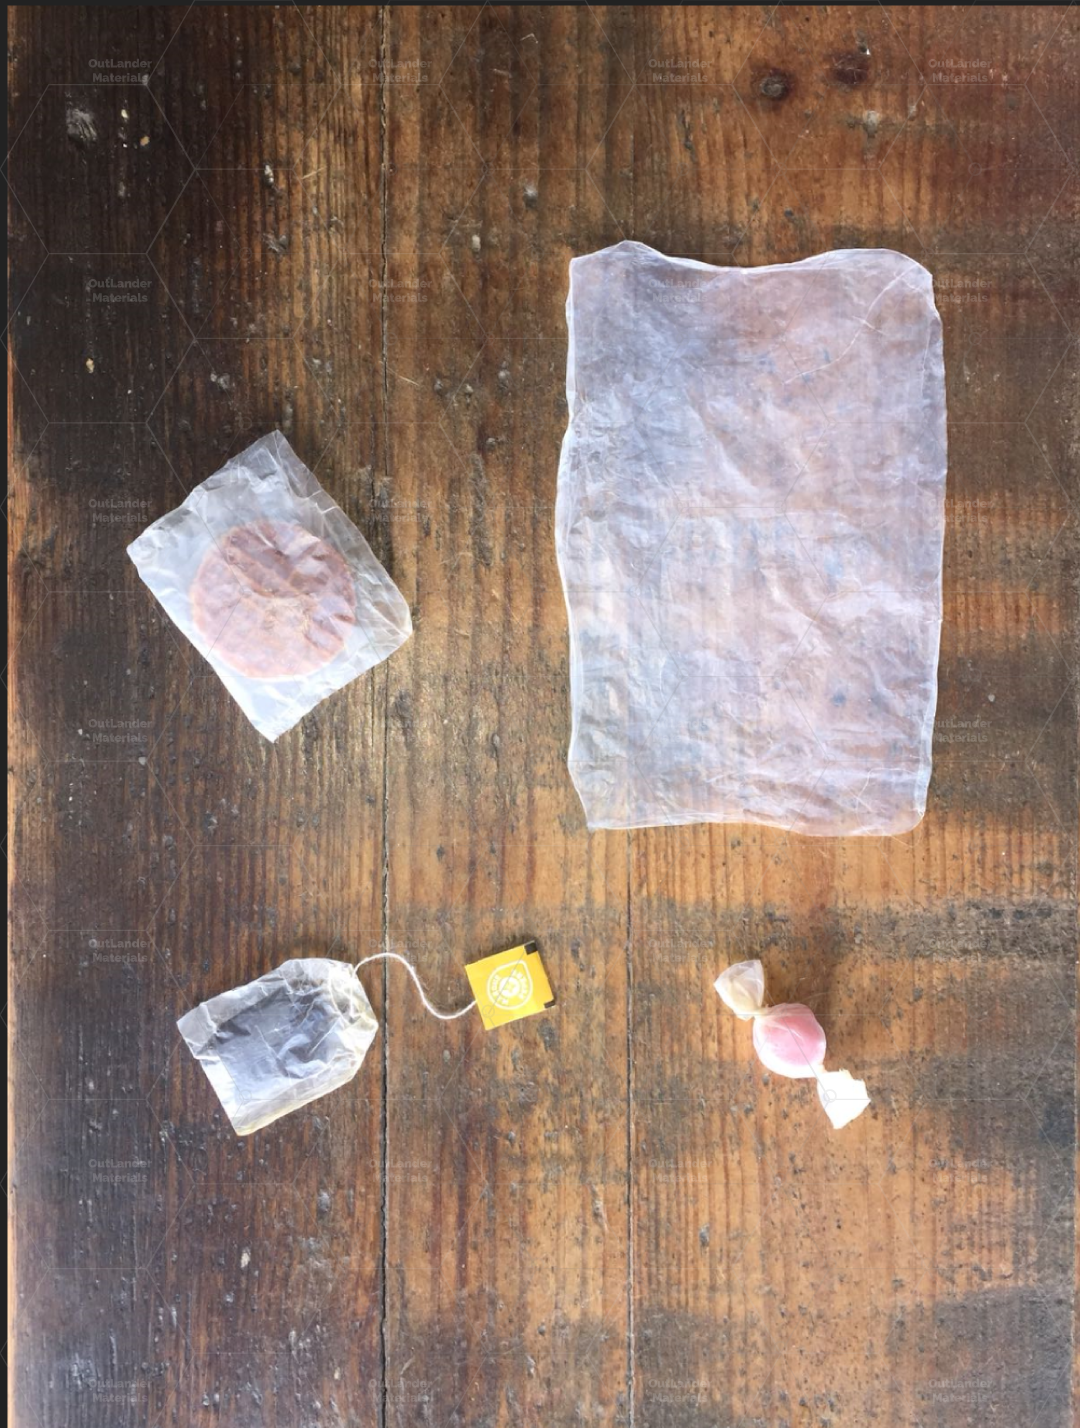 Solution to Plastic Waste - Featured by We Share Ventures, a non-profit foundation committed to creating ideal conditions for startups and young talents to make an impact. Featured as one of the Dutch company who fights plastic pollution.